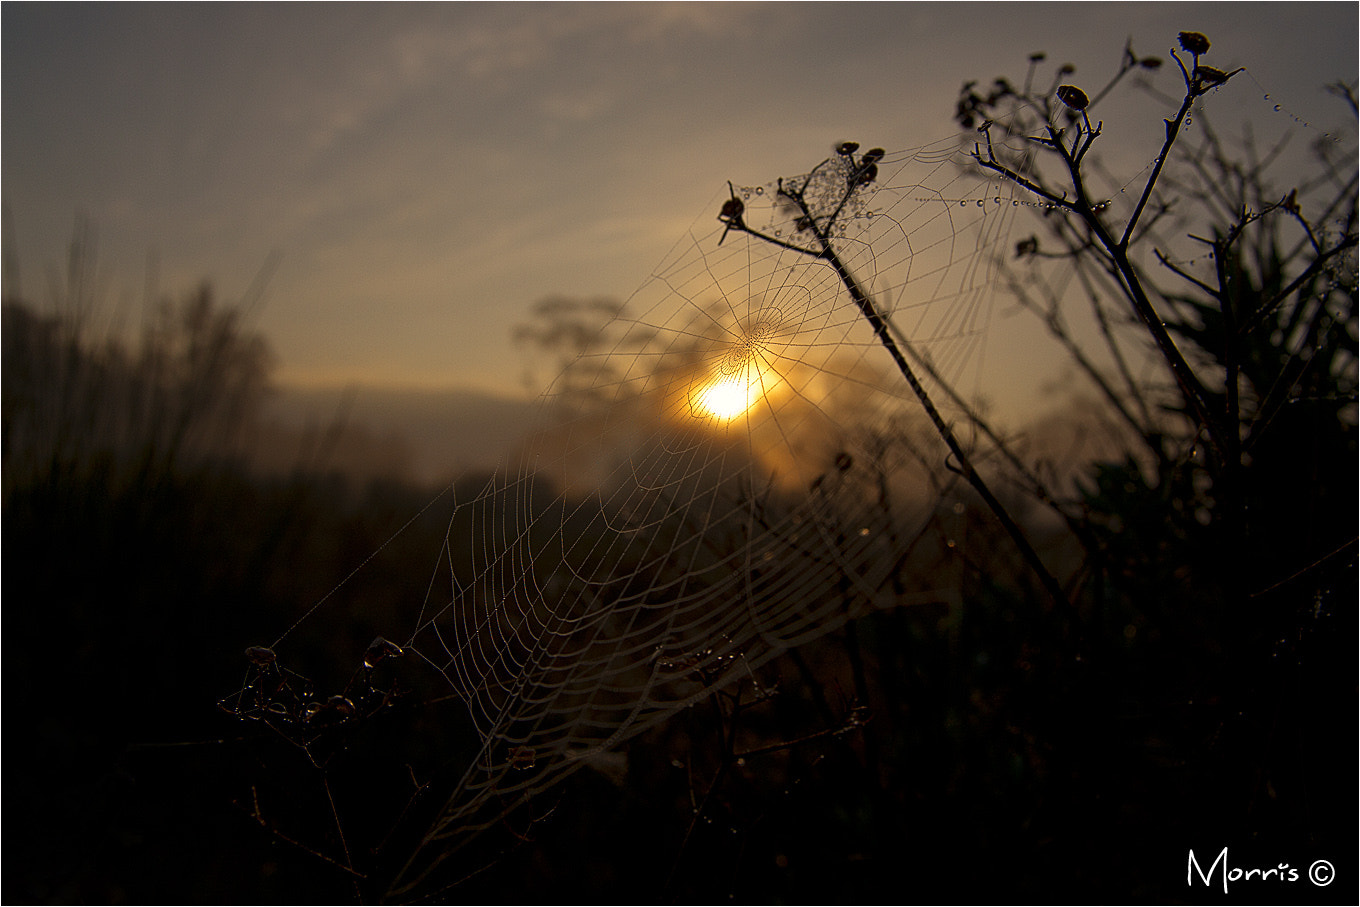 Photograph Morning Web by Dave Morris on 500px